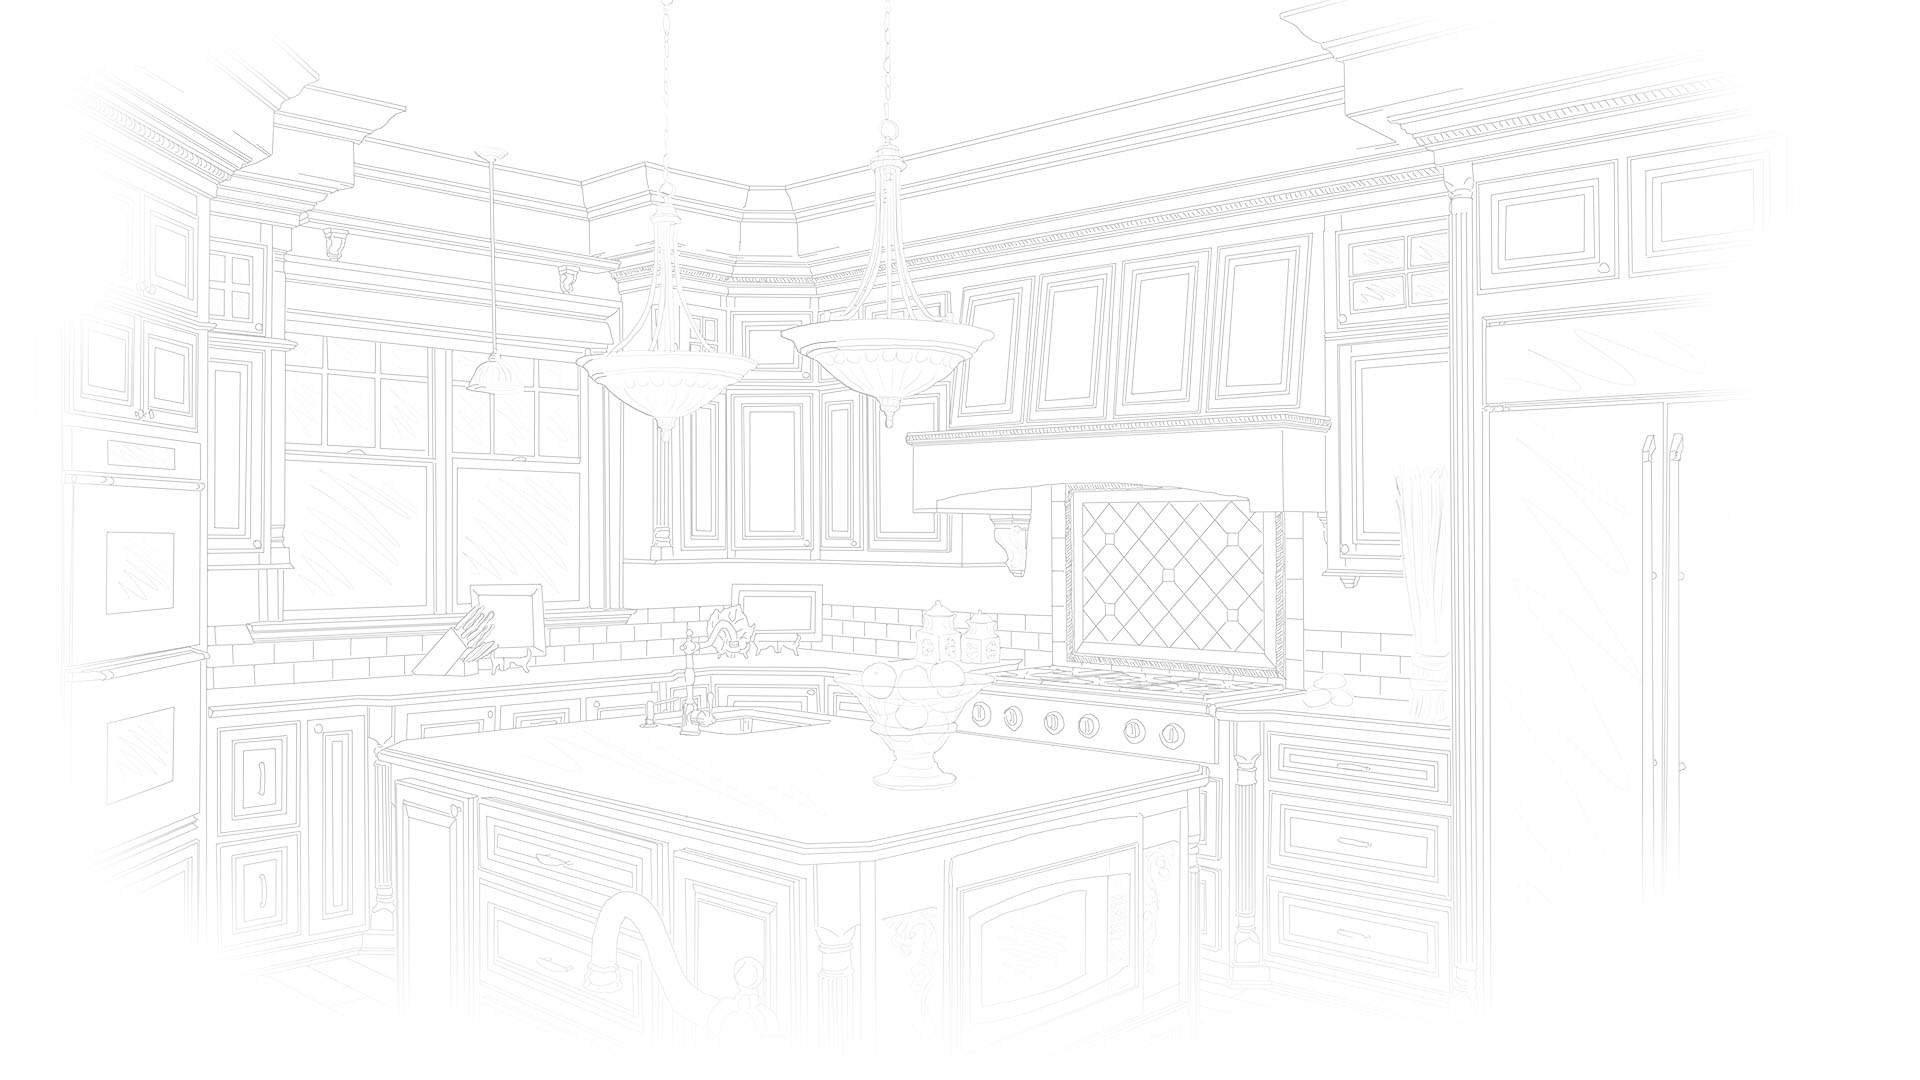 Home kitchen line art background.